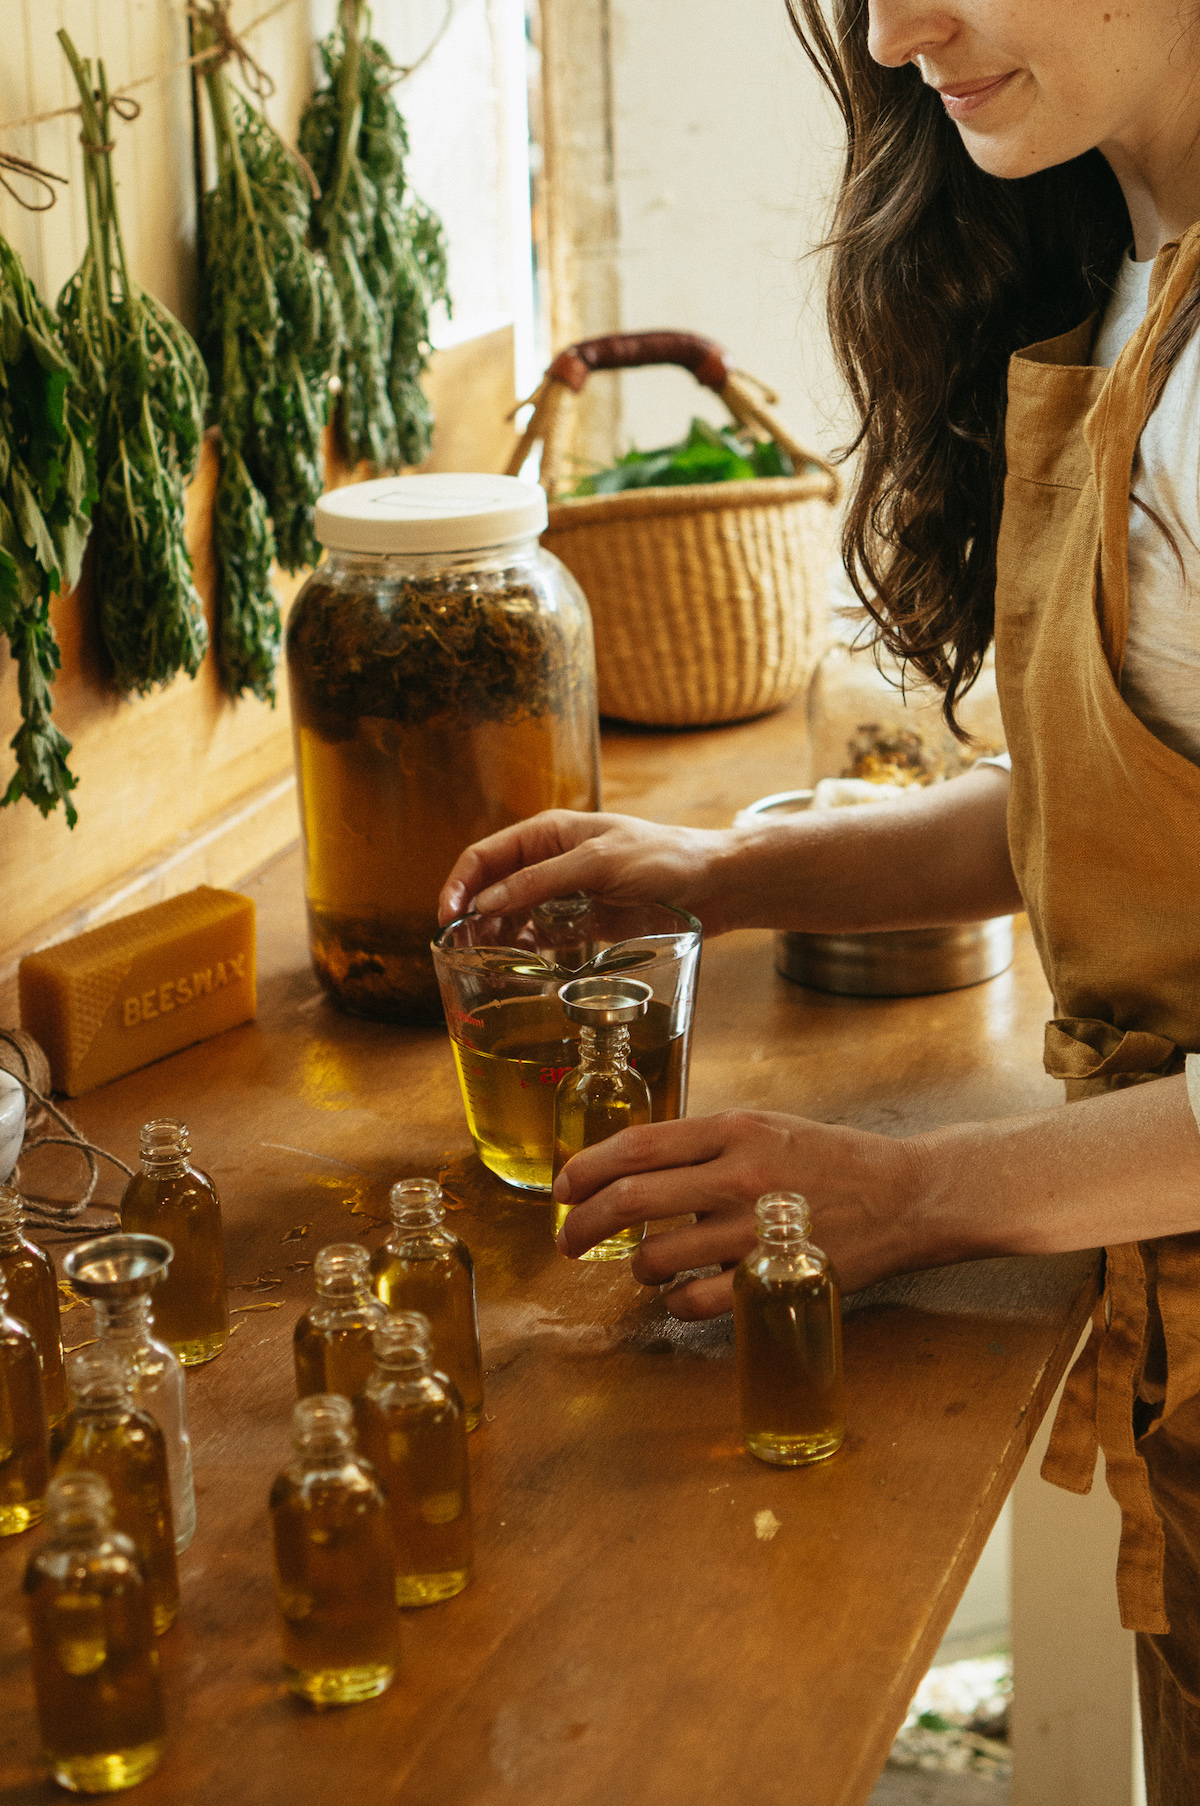 Your Herbal Business Startup - enroll with the Herbal Academy's Business Herbal Course